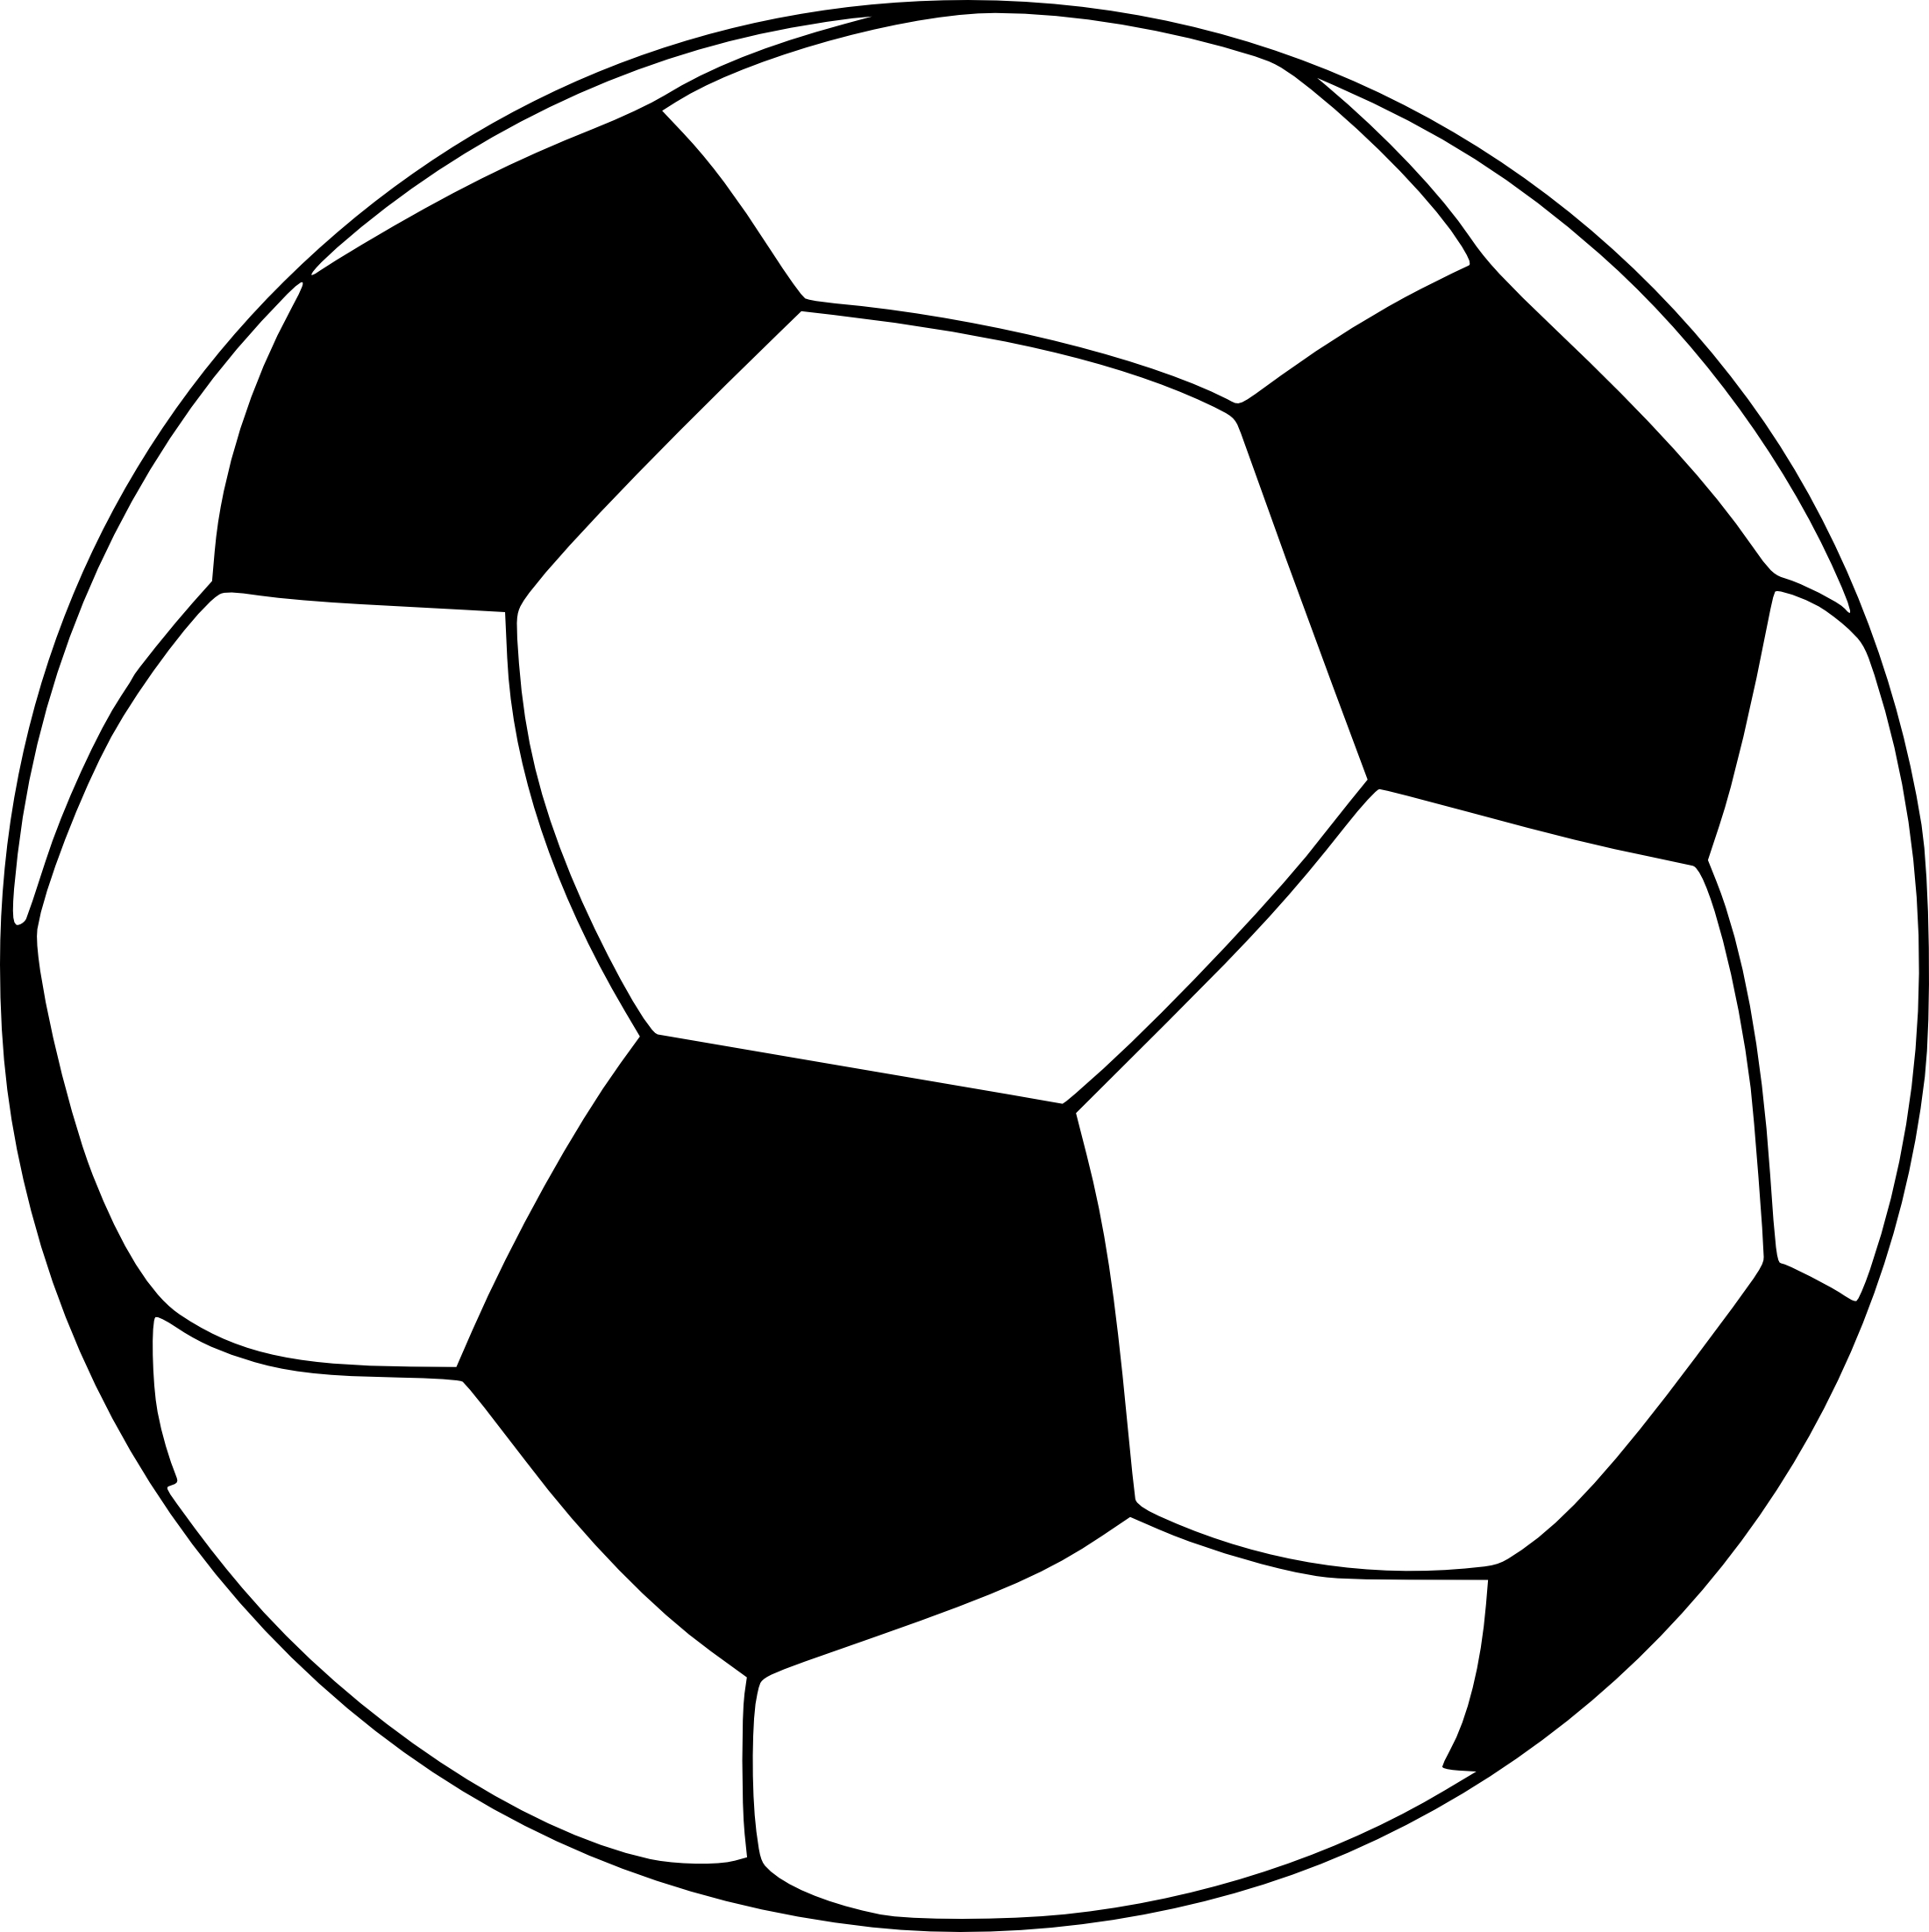 Image Coloriage Ballon.Coloriage Ballon De Football A Imprimer